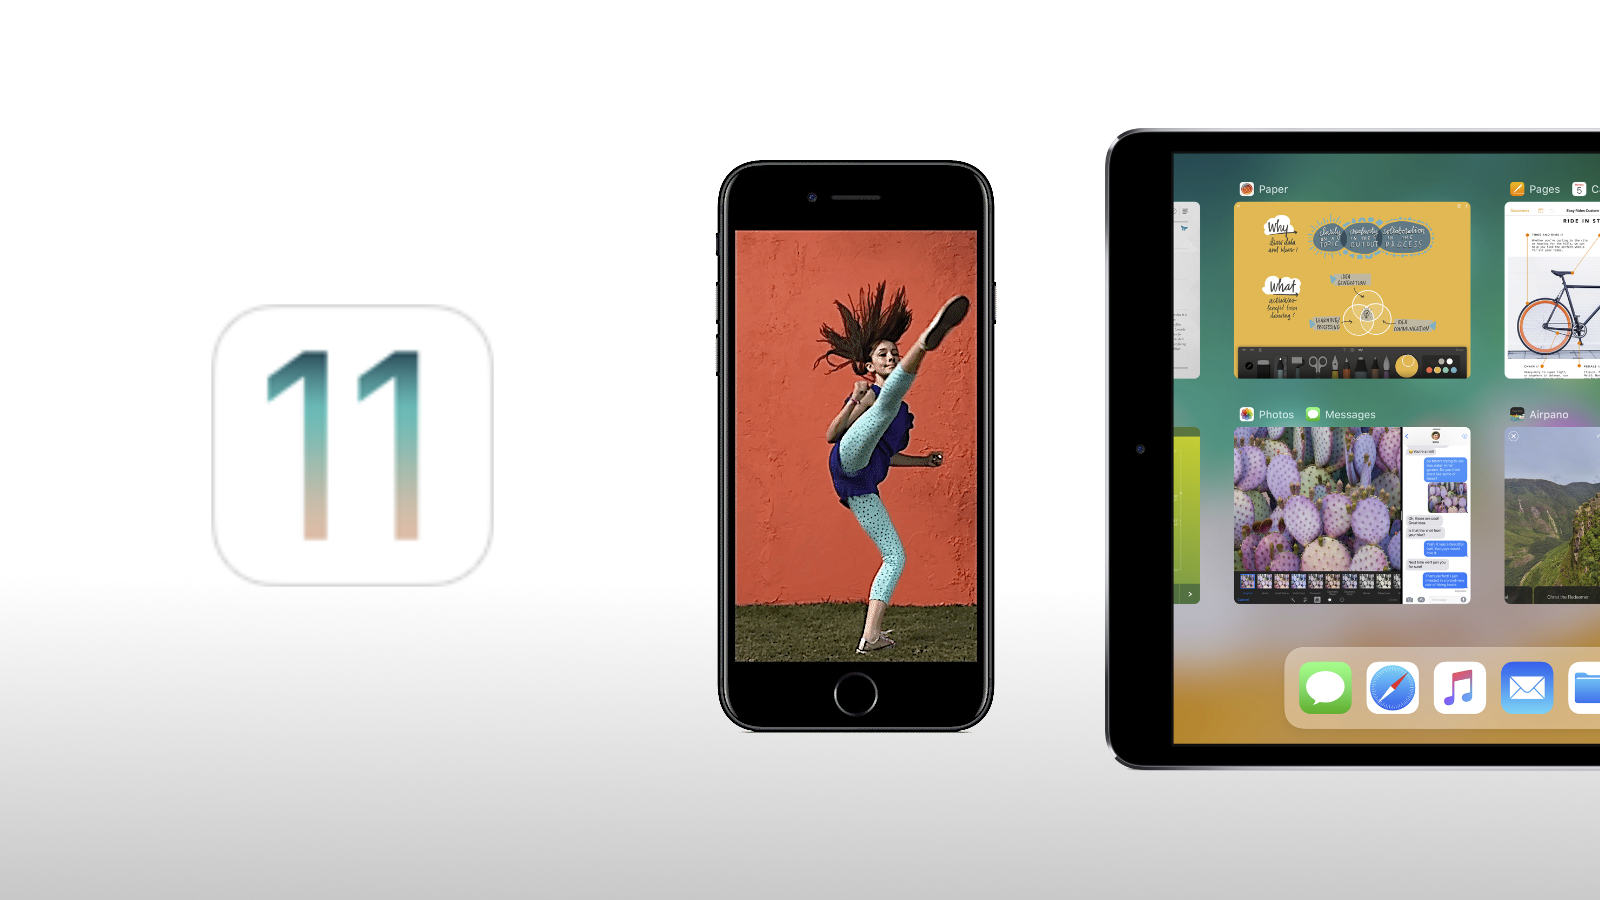 20 iOS 11 tips and tricks you need to know to master your